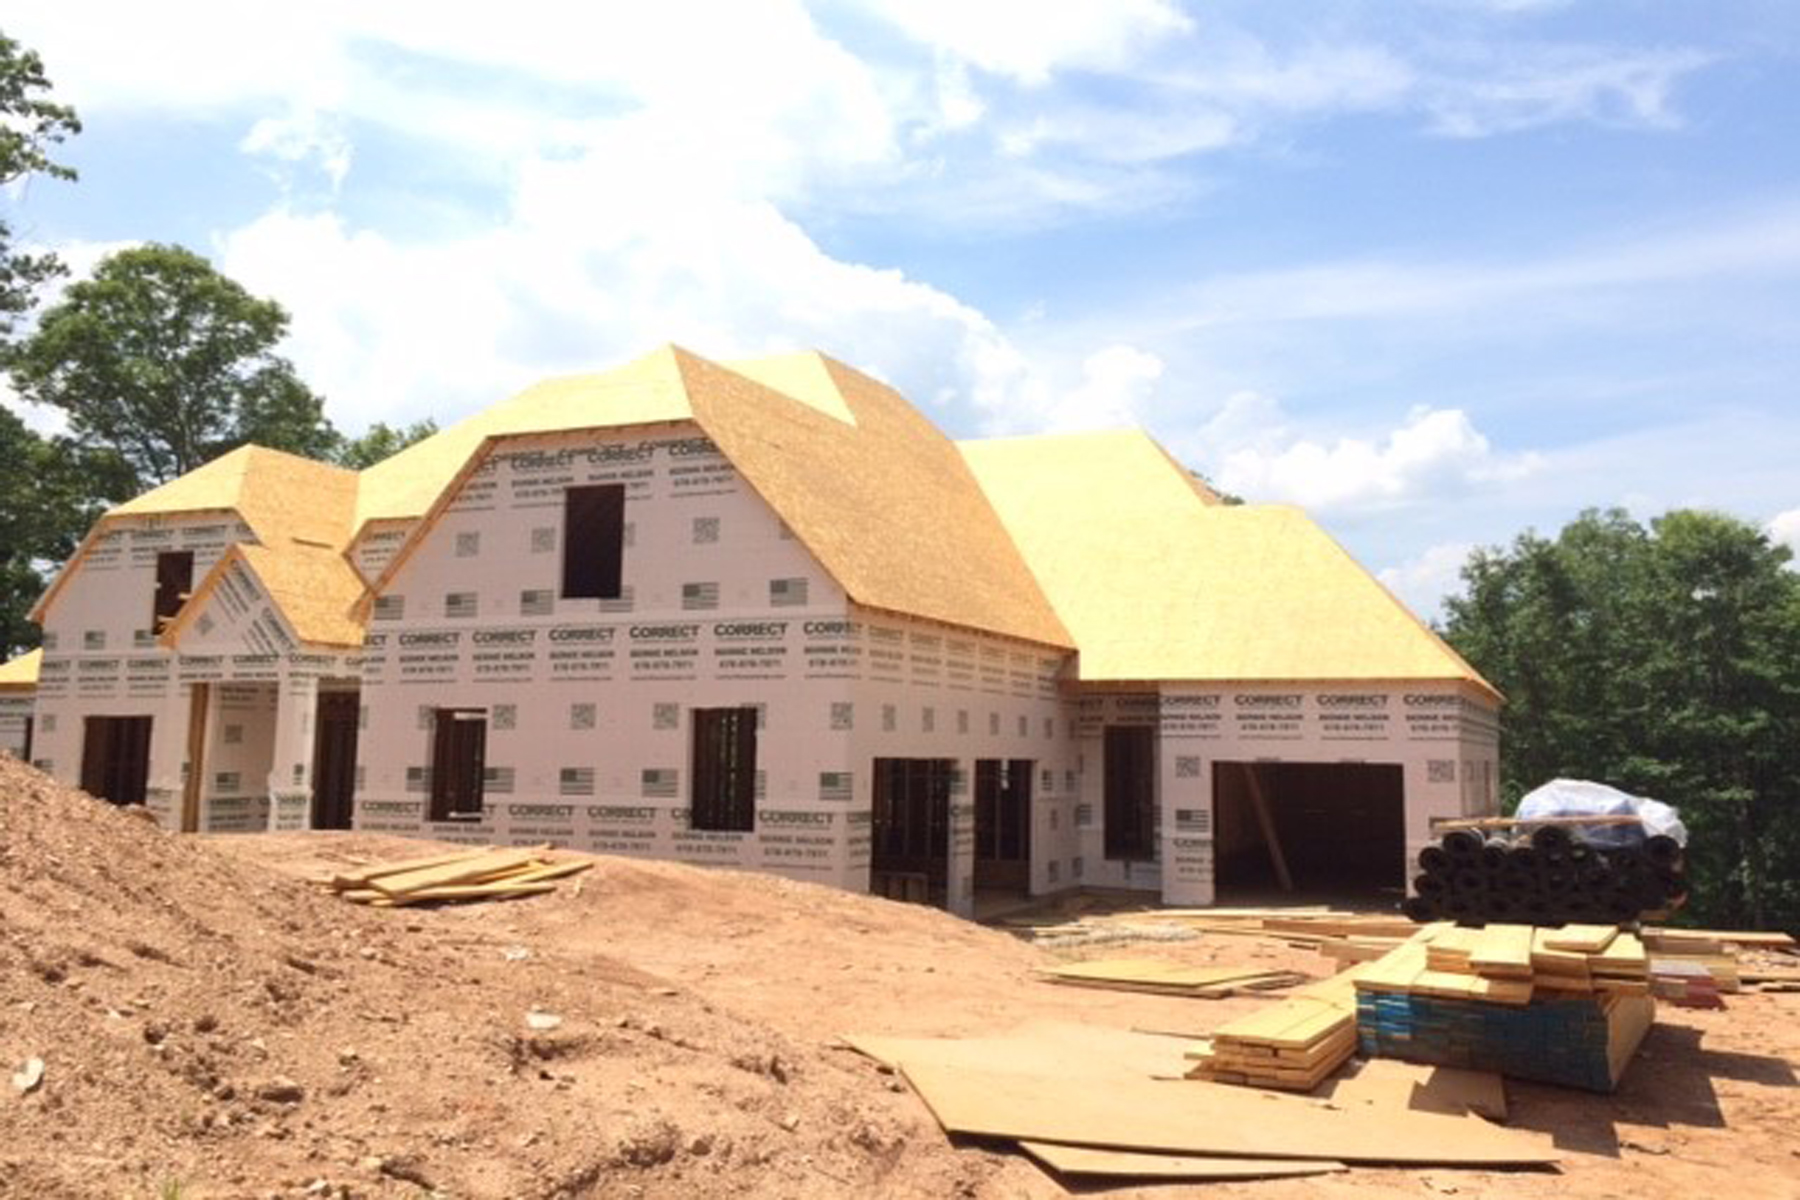 Single Family Home for Sale at Sandy Springs New Construction 5020 Riverview Road Sandy Springs, Georgia 30327 United States